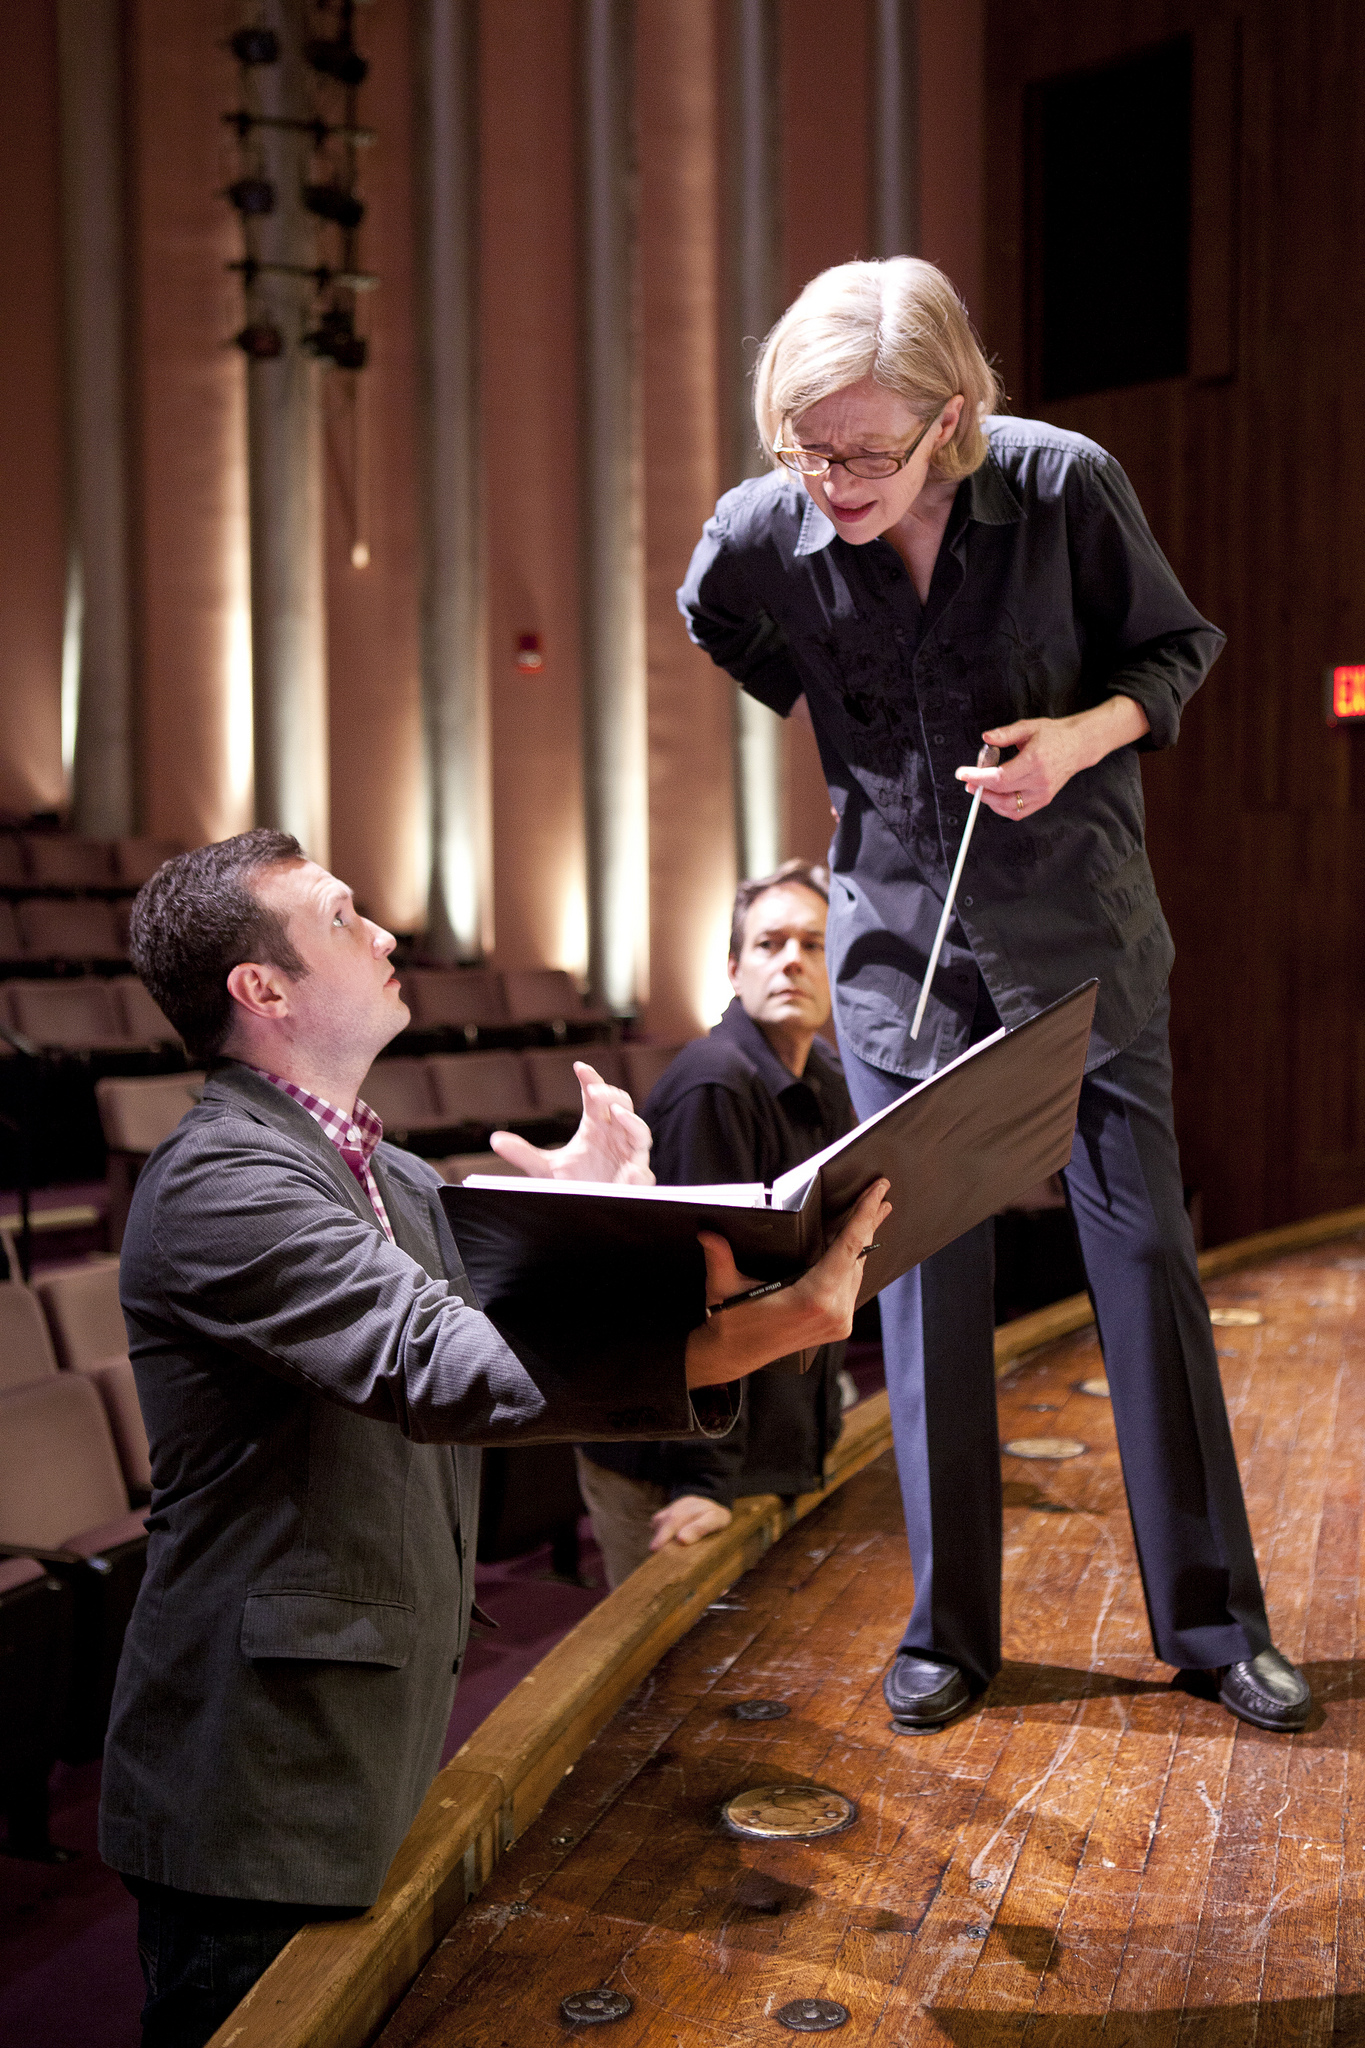 """Rehearsals for """"Charon,"""" with Jake Heggie and Anne Manson, The Kennedy Center, Washington, D.C."""